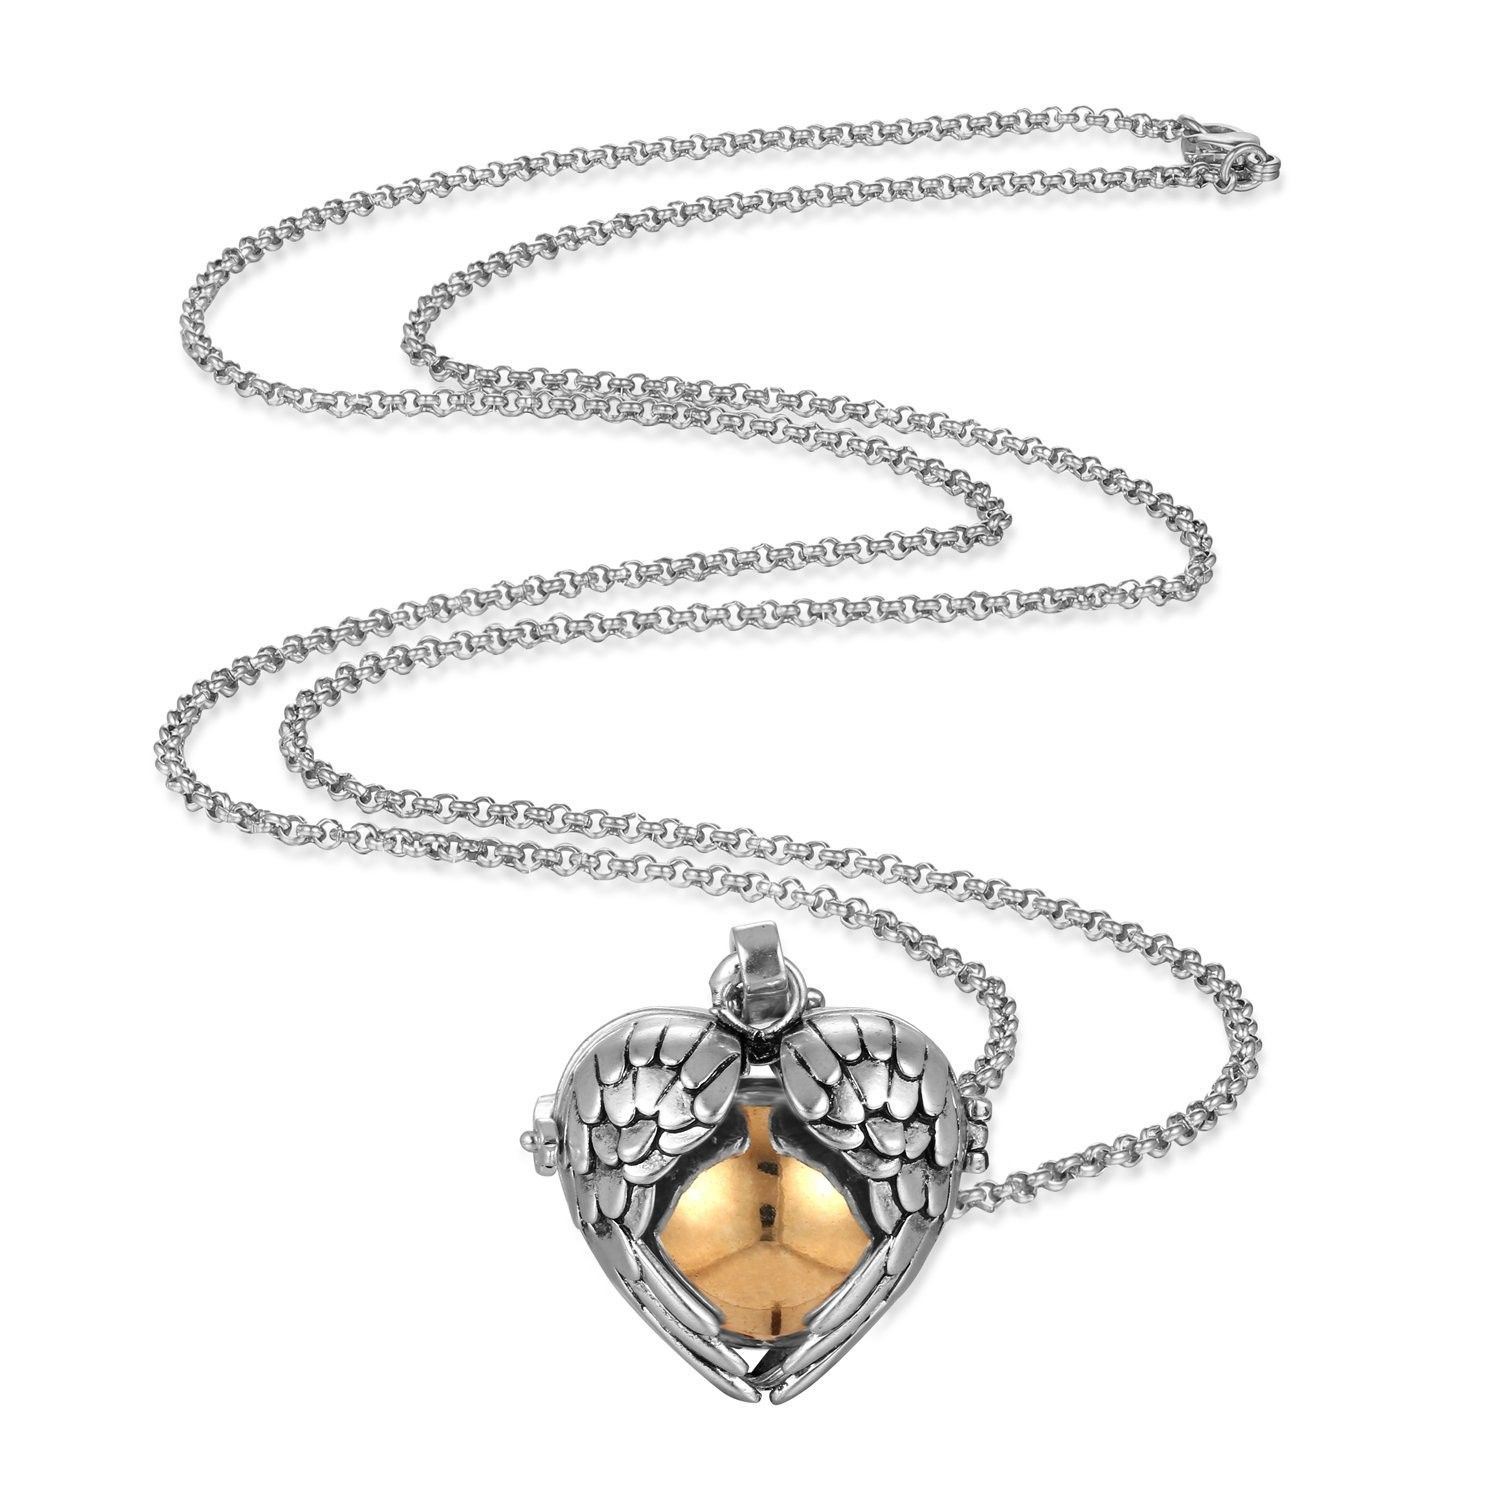 Mexican Bola Harmony Chime Ball Angel Caller Pregnancy Locket Within Most Up To Date Chiming Filigree Hearts Pendant Necklaces (View 21 of 25)